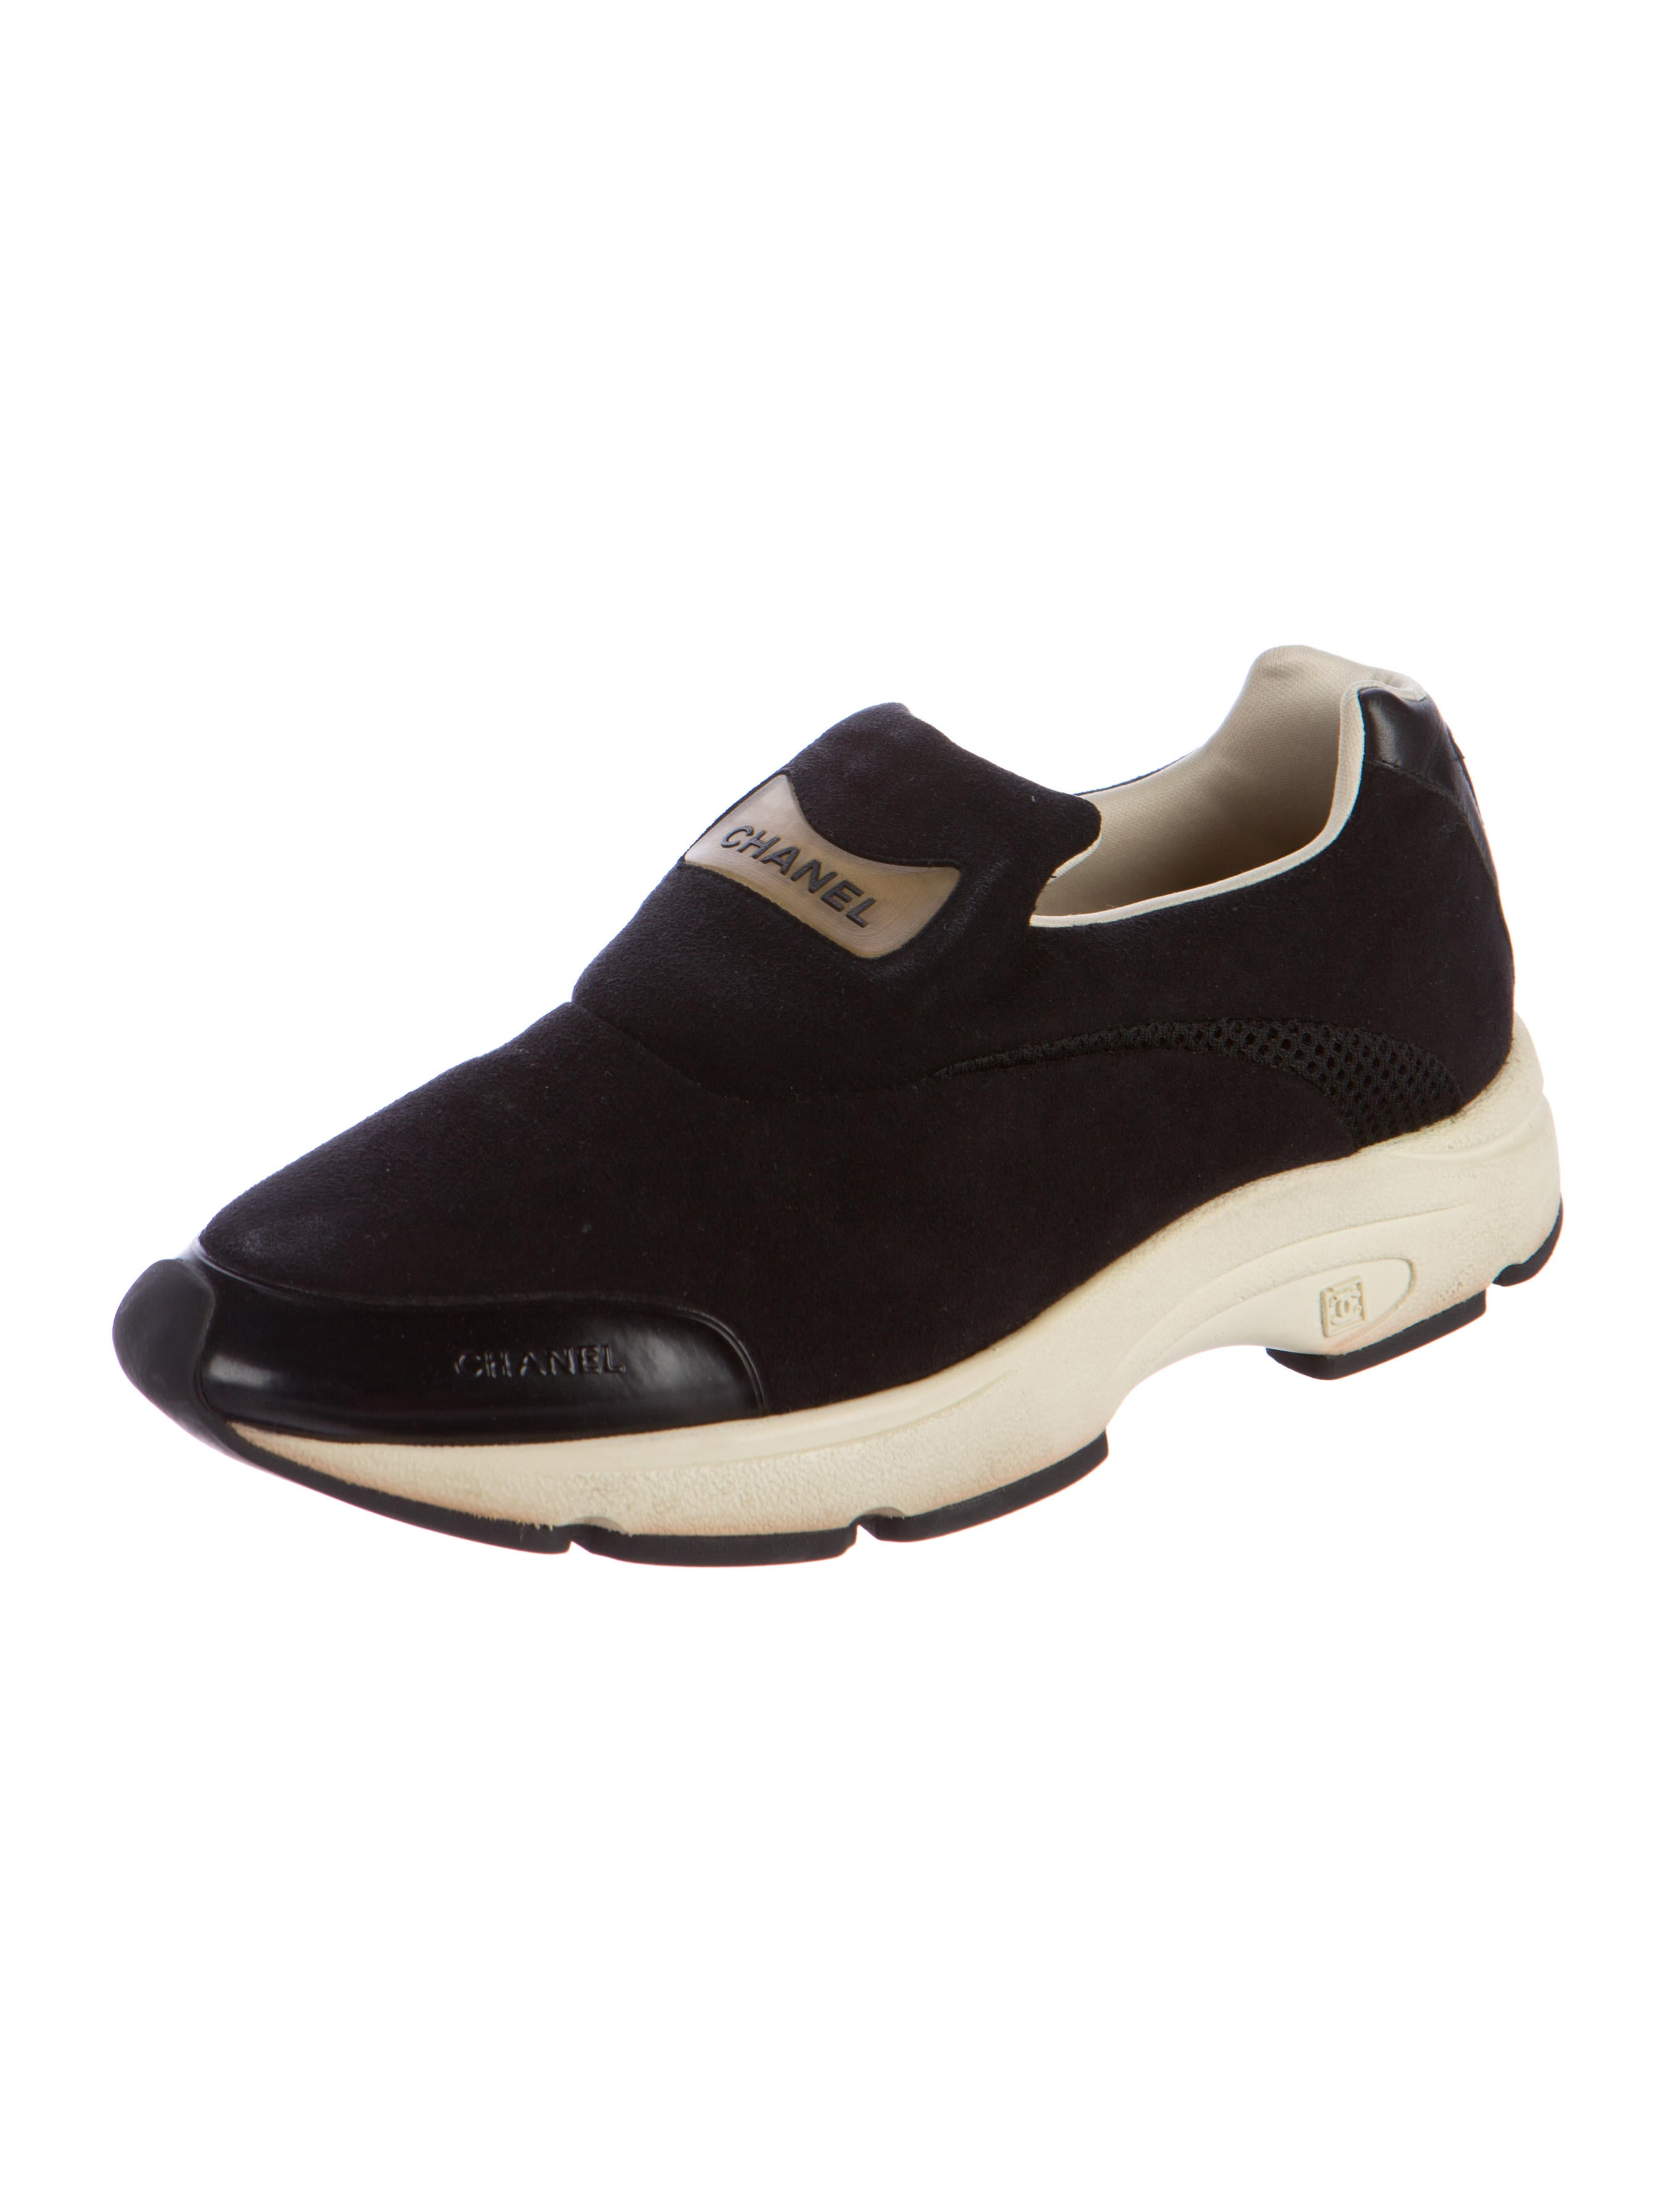 chanel suede slip on sneakers shoes cha177409 the